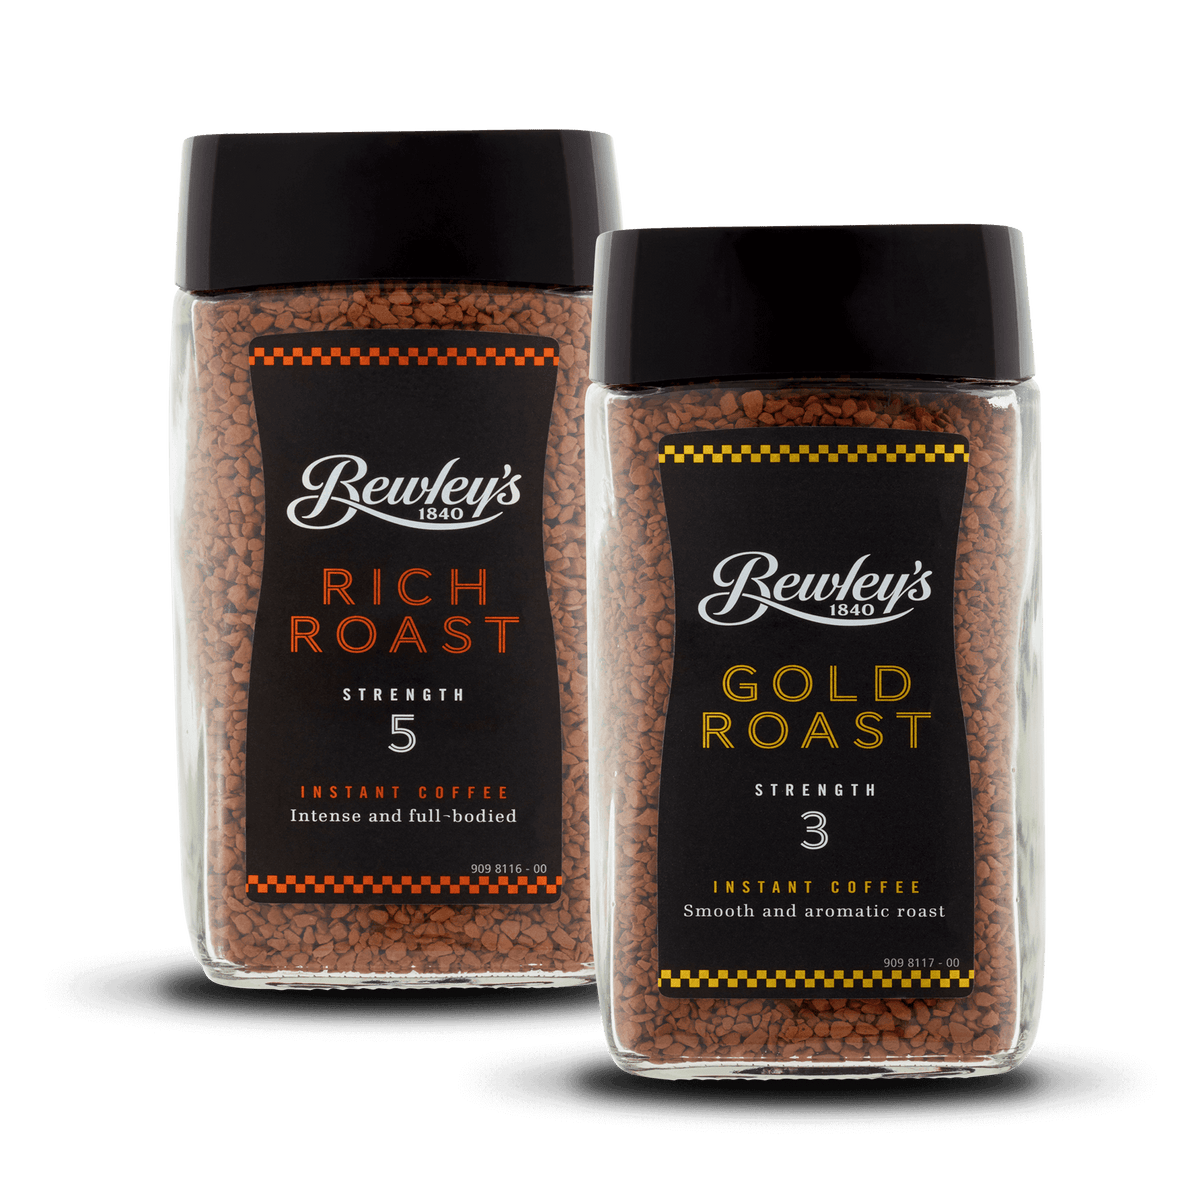 Bewley's Instant Coffee Collection